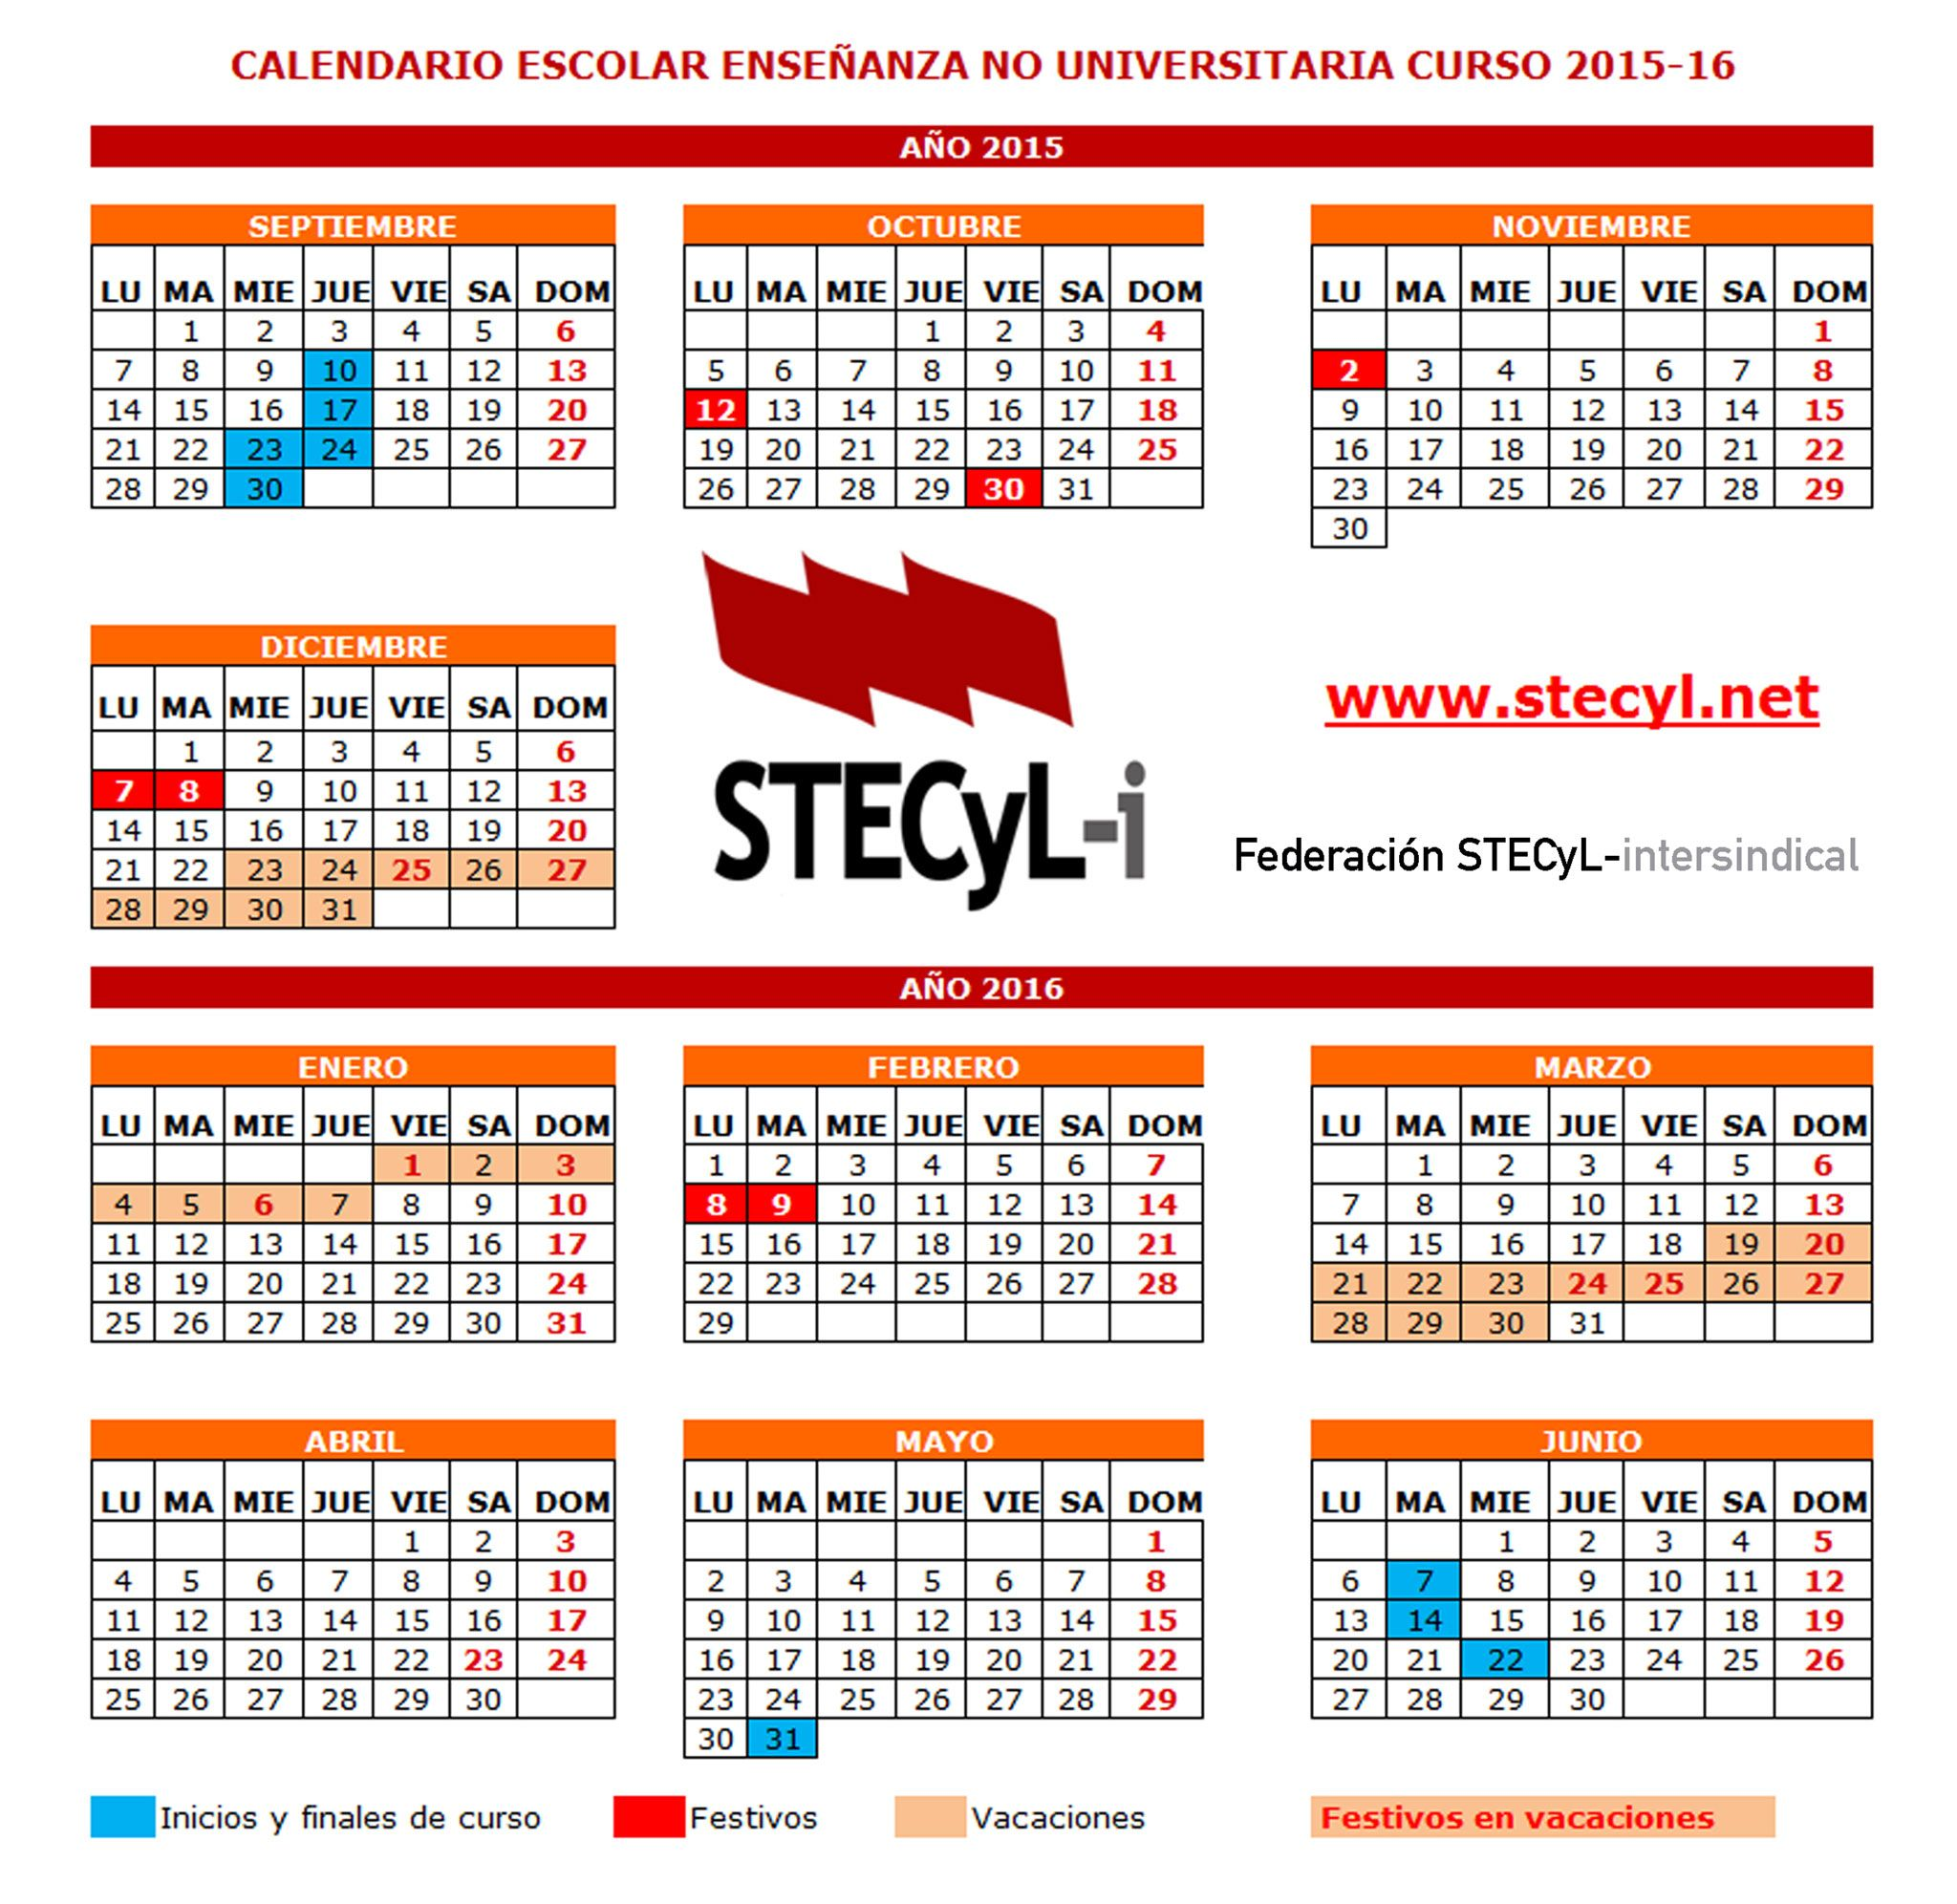 Calendario Escolar Extremadura.Calendario Escolar 2015 16 Ensenanzas No Universitarias Cyl Stecyl I